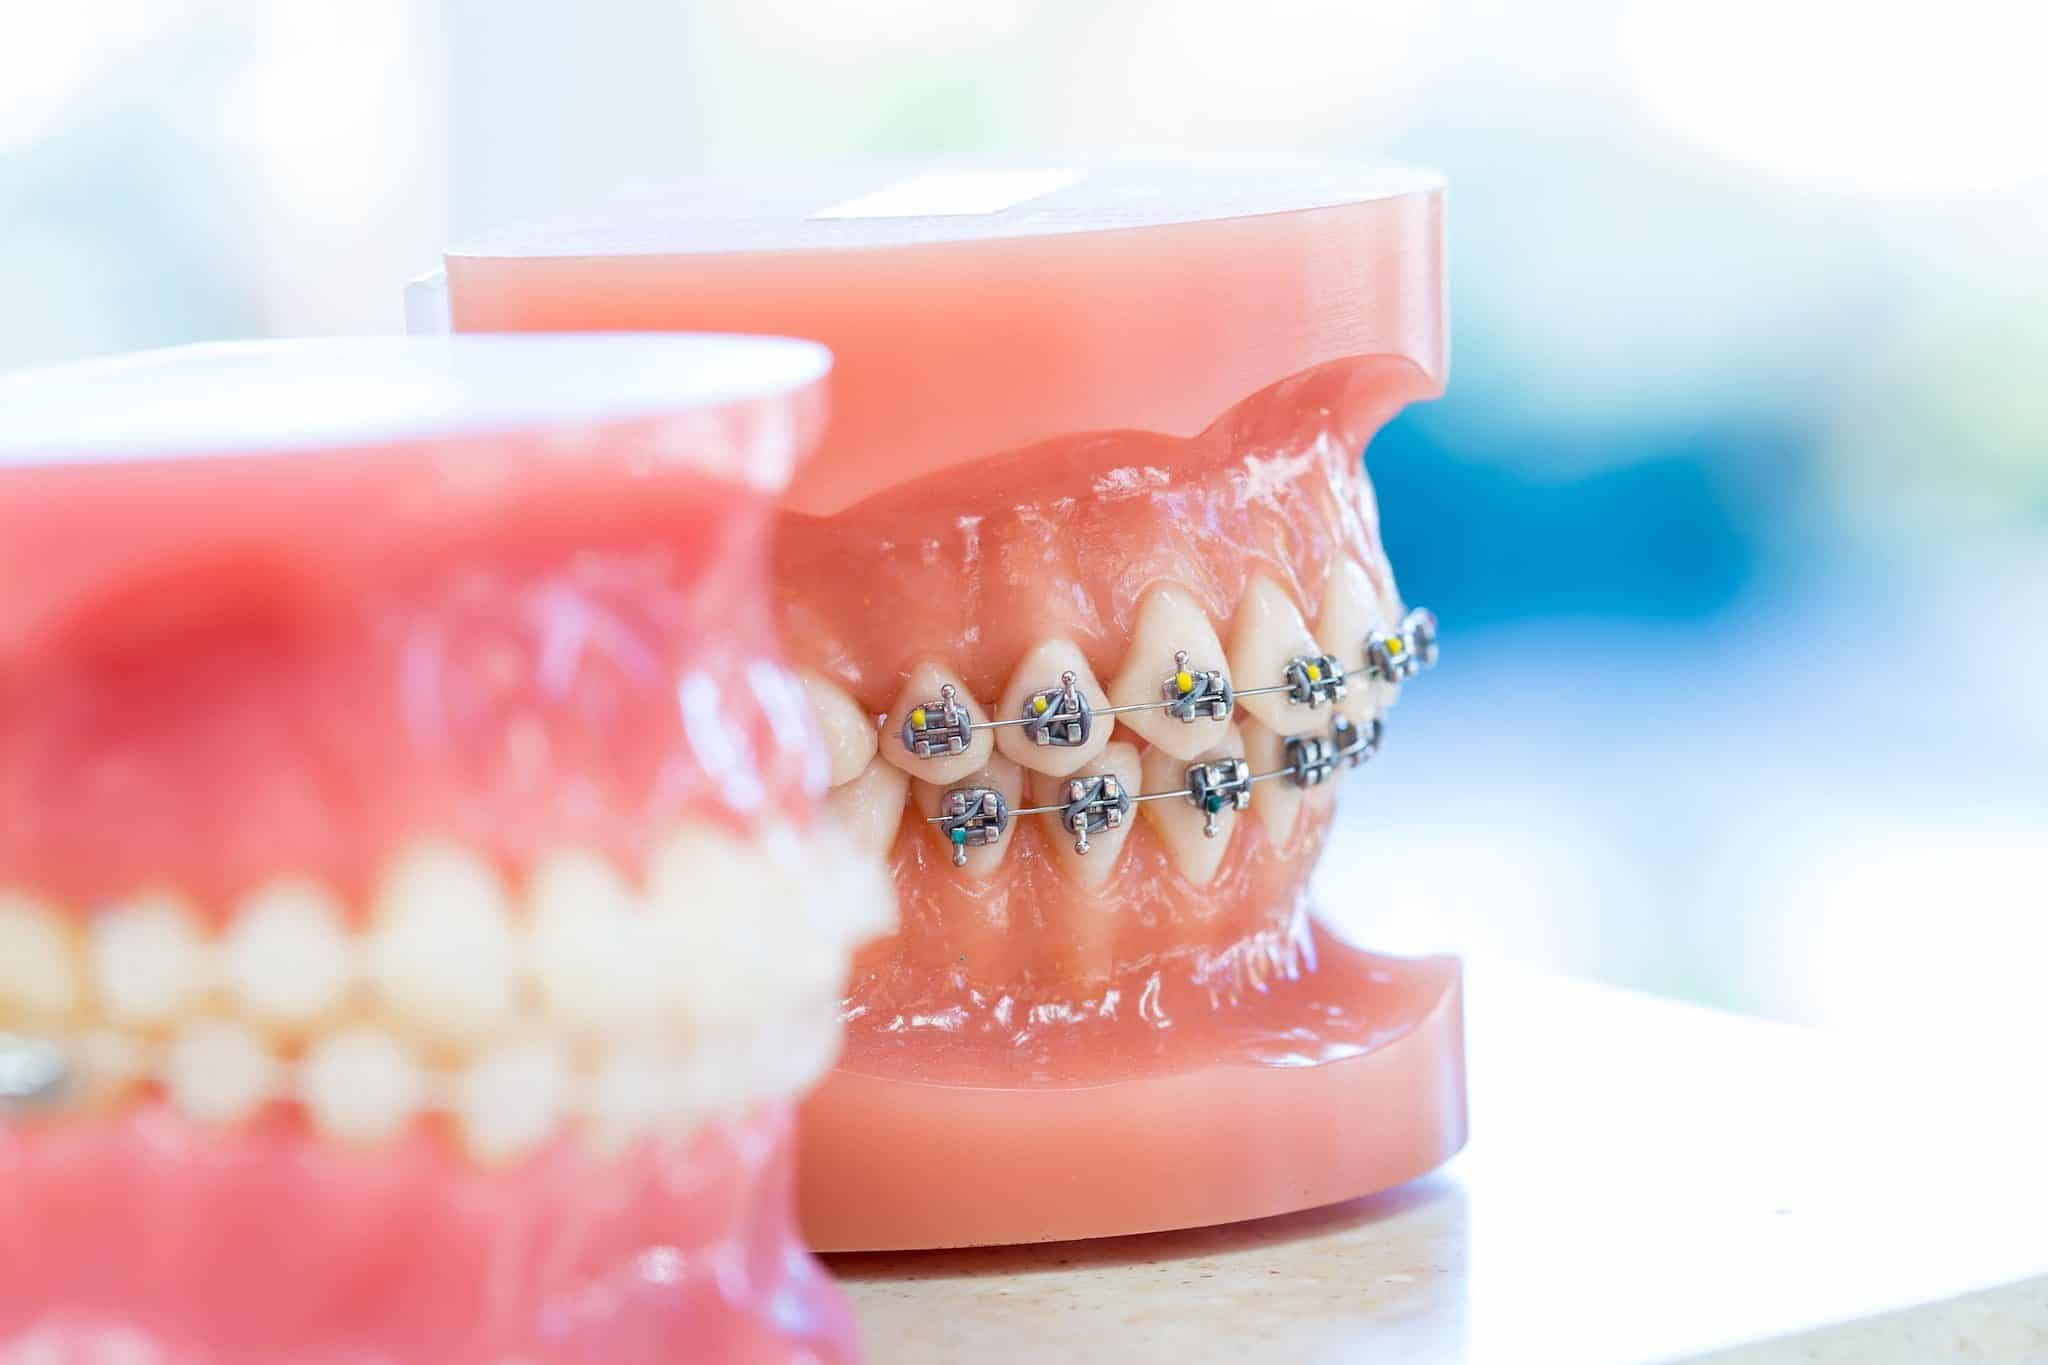 Ortho Essentials Appel Orthodontics 6 2048x1365 - Customized Braces & Orthodontic Treatment For Adults and Children